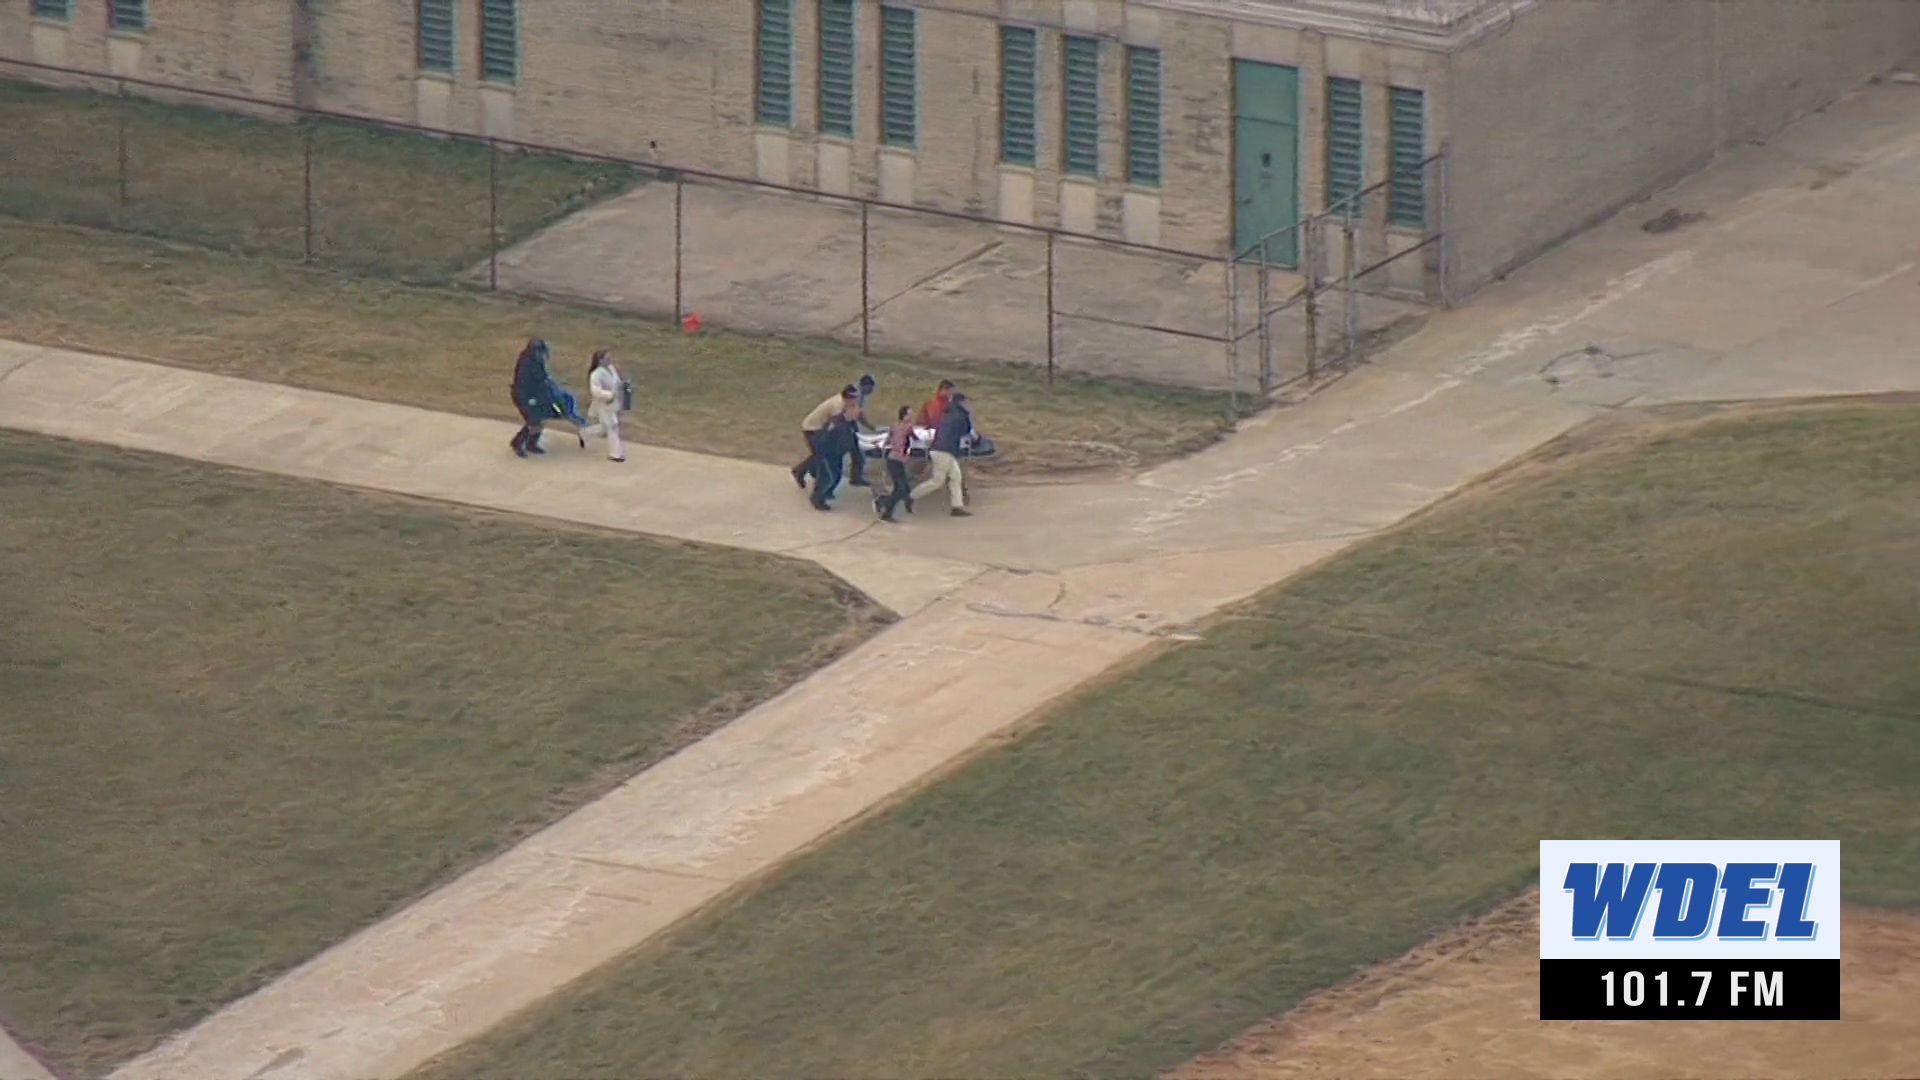 Lockdown situation at James T. Vaughn Correctional Center in Smyrna